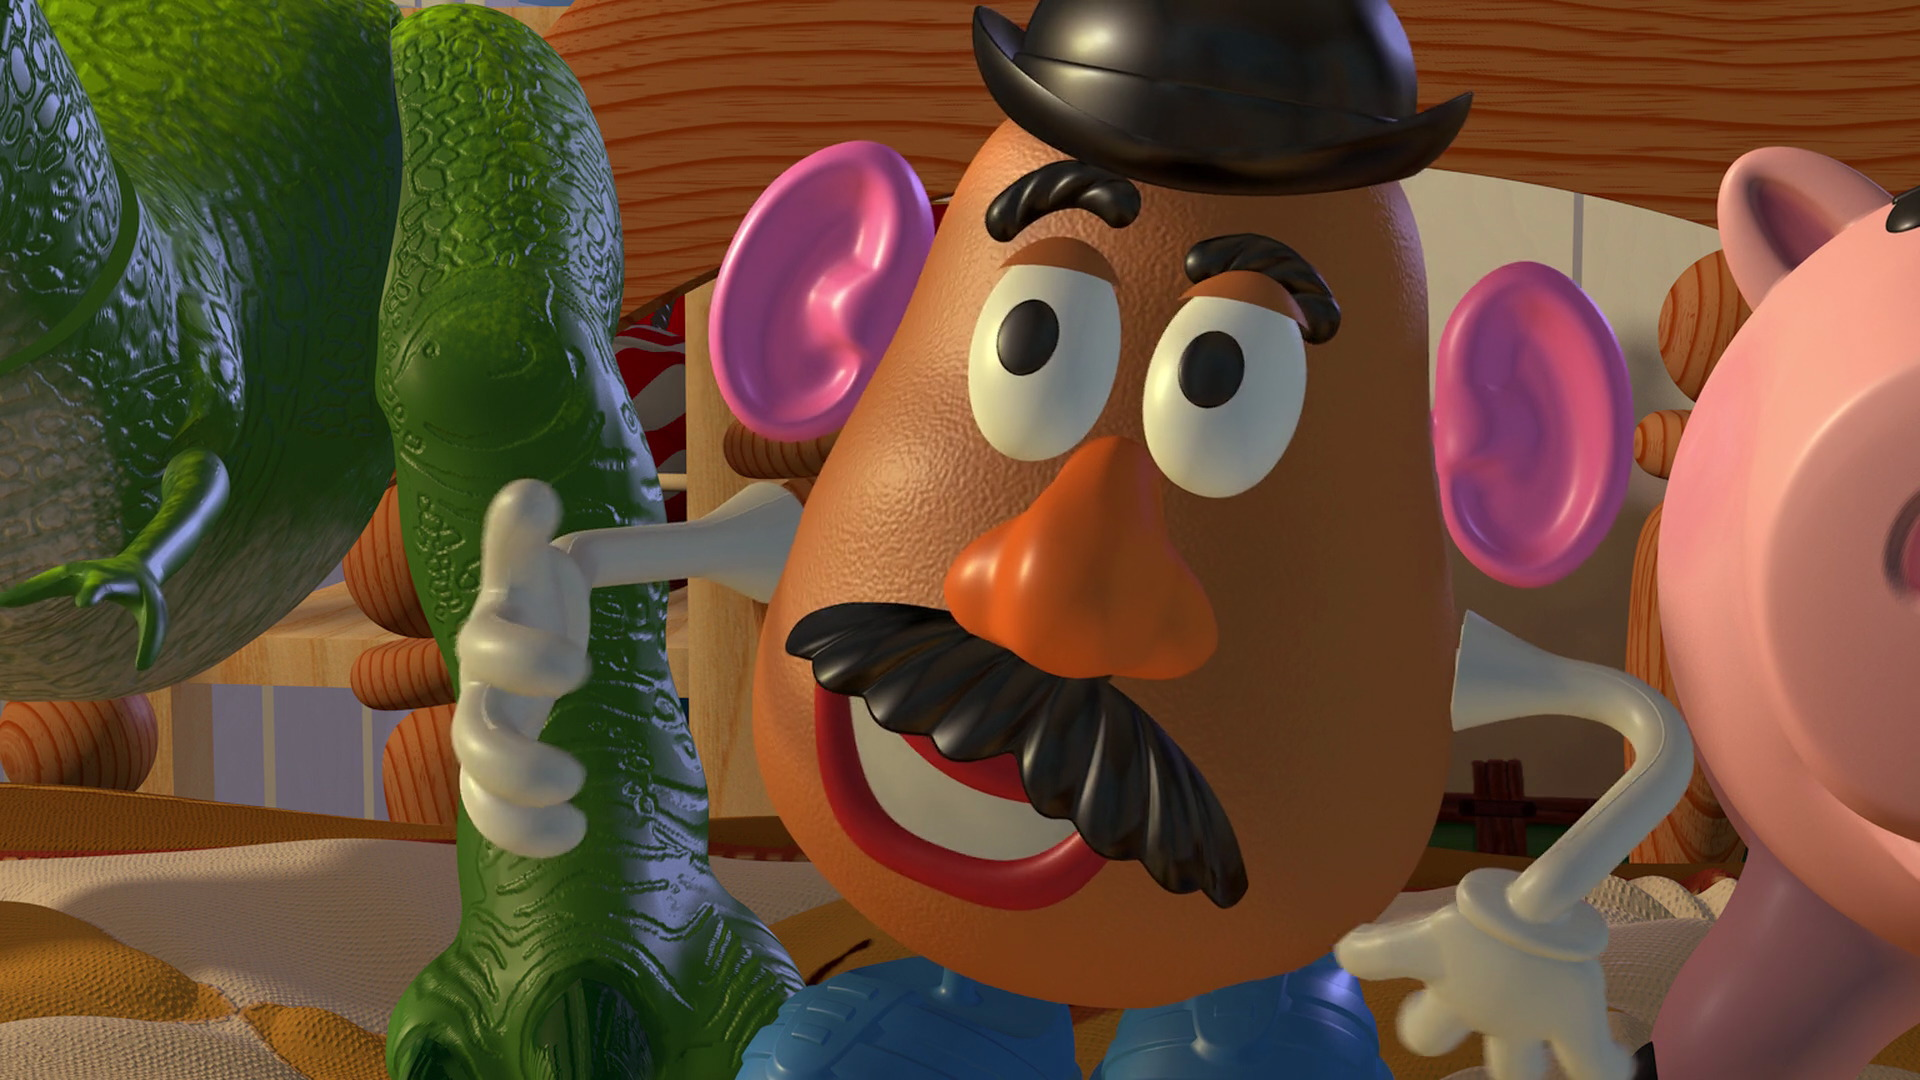 Monsieur patate personnage dans toy story pixar planet fr - Monsieur patate toy story ...